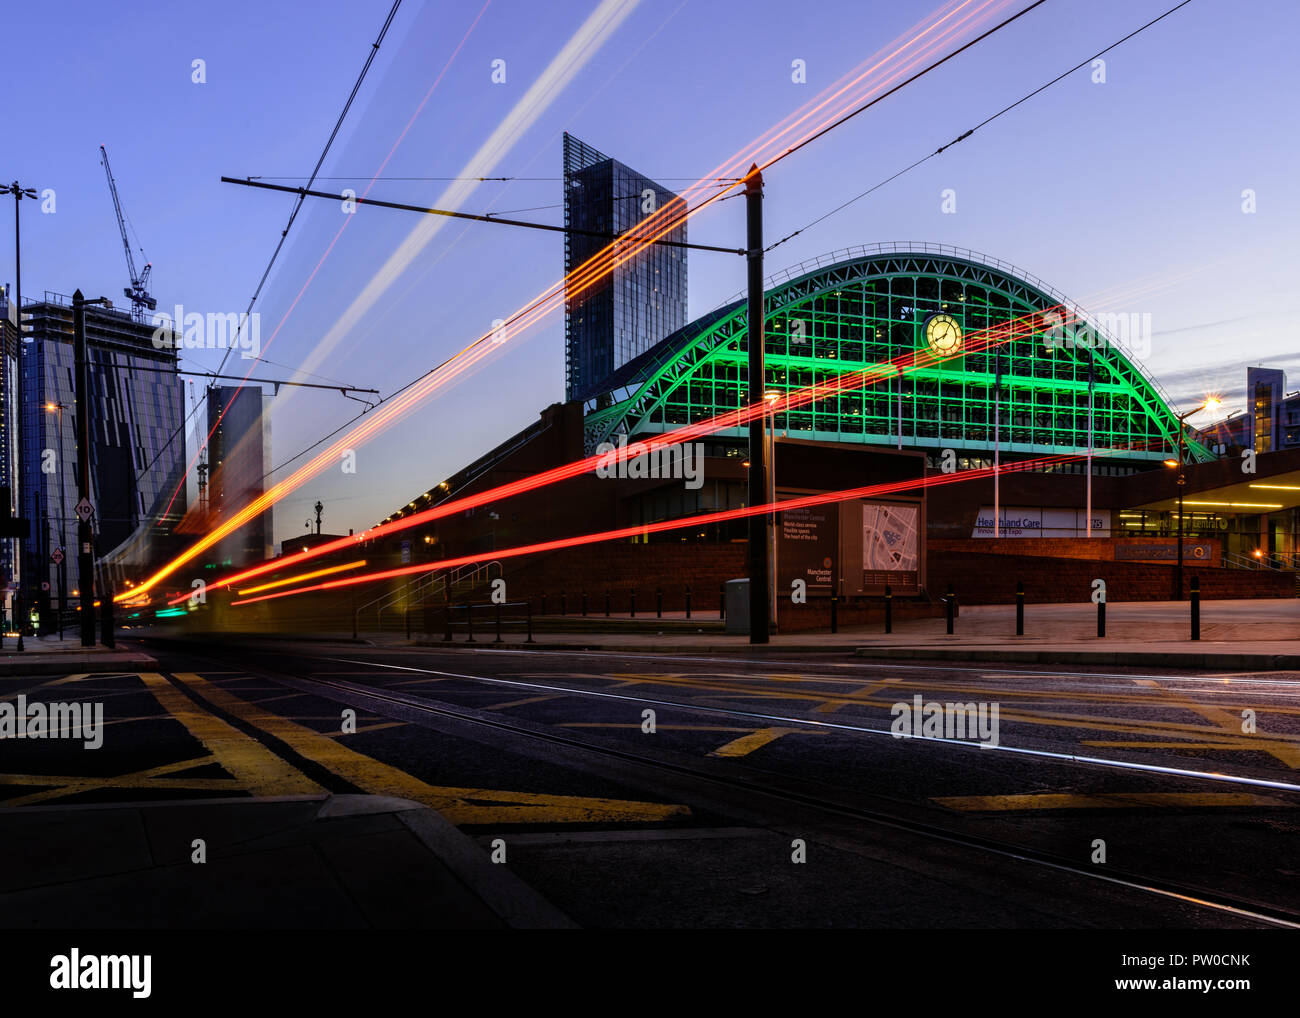 Twilight view of the Manchester Central Convention Centre with a passing tram. The Beetham Tower is in the background. - Stock Image